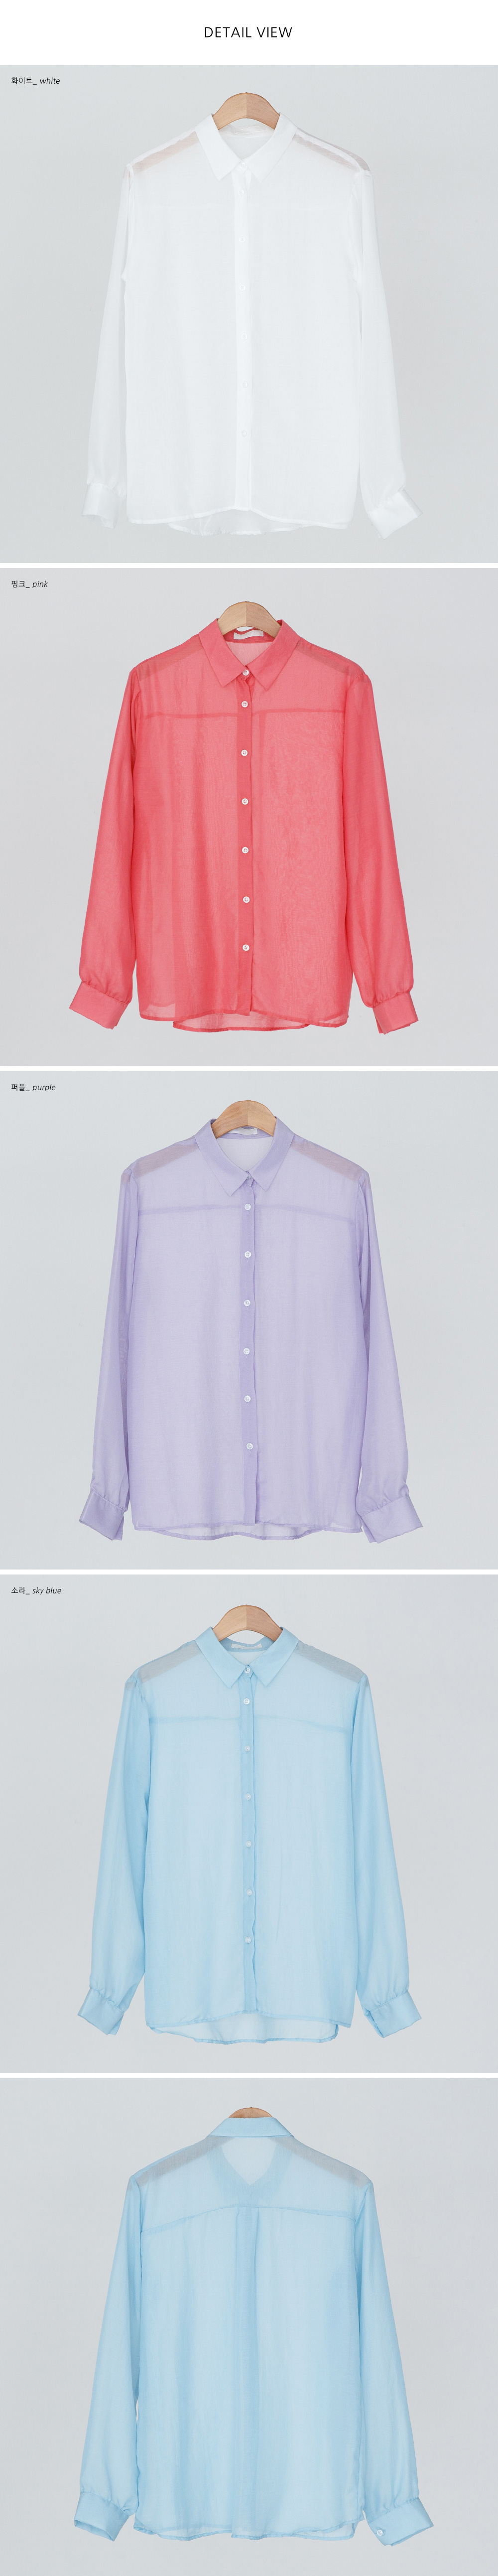 loose fit see-through shirts